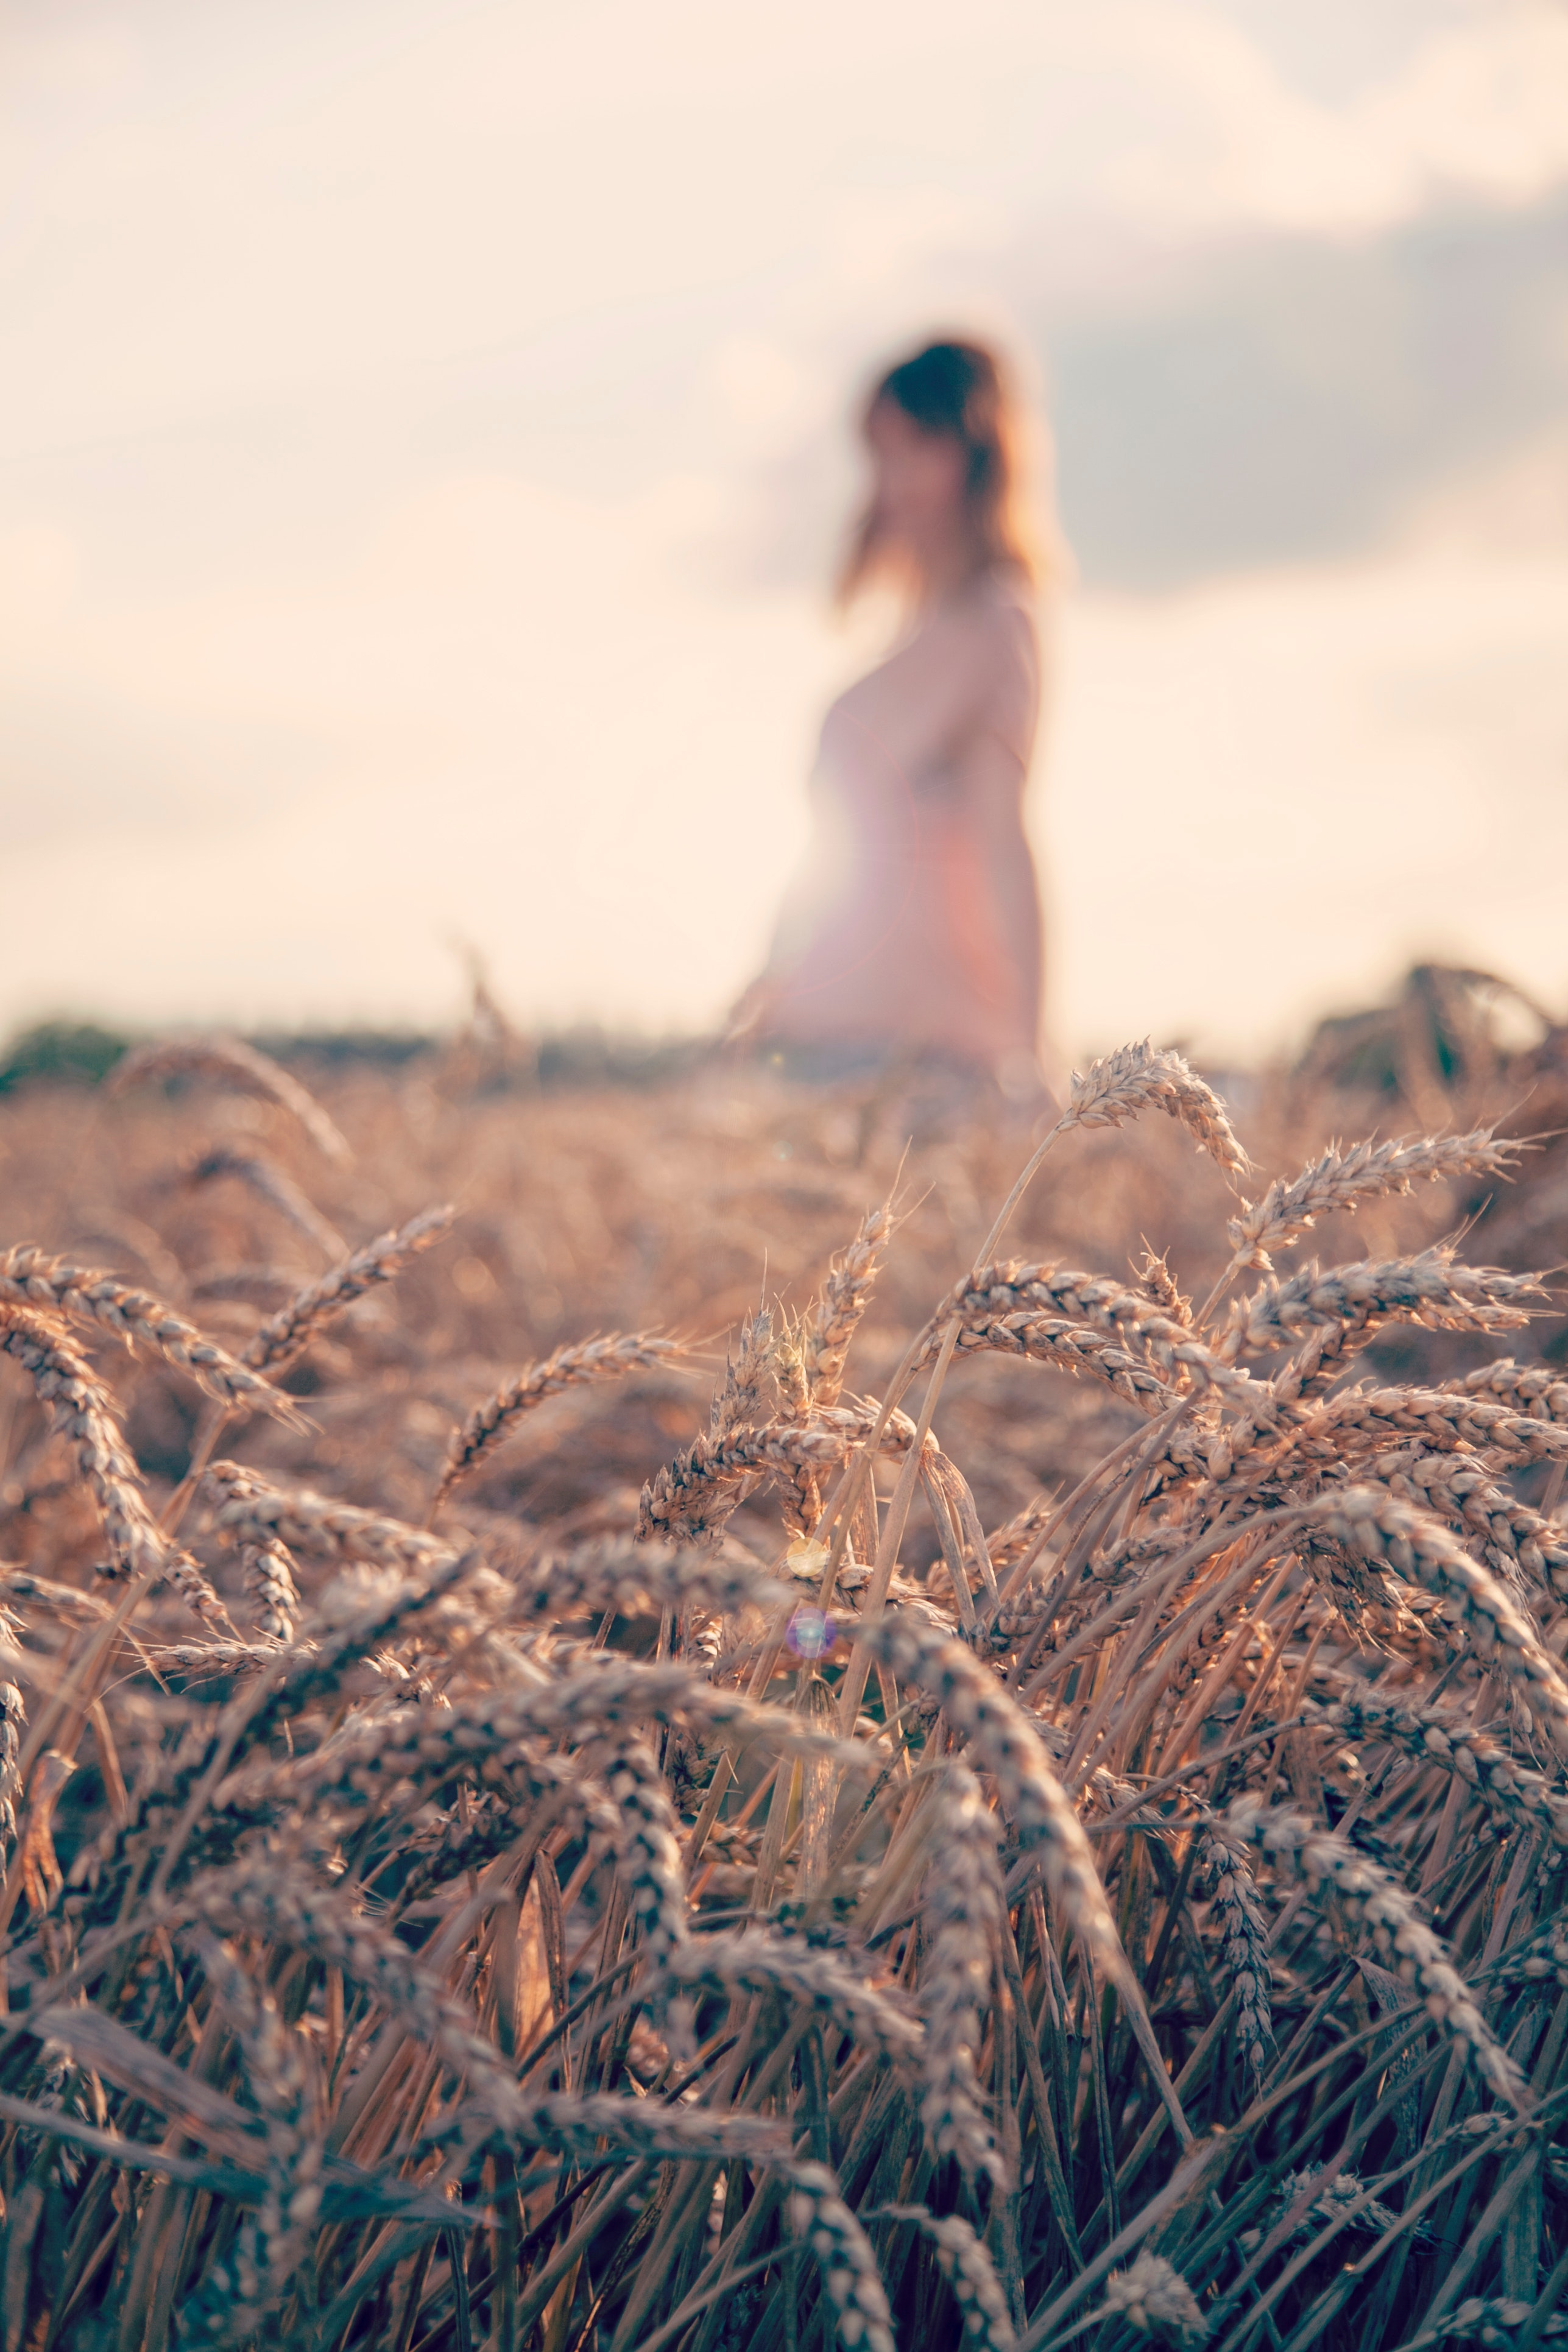 Woman in the Fields, Agriculture, Grain, Sun, Sky, HQ Photo